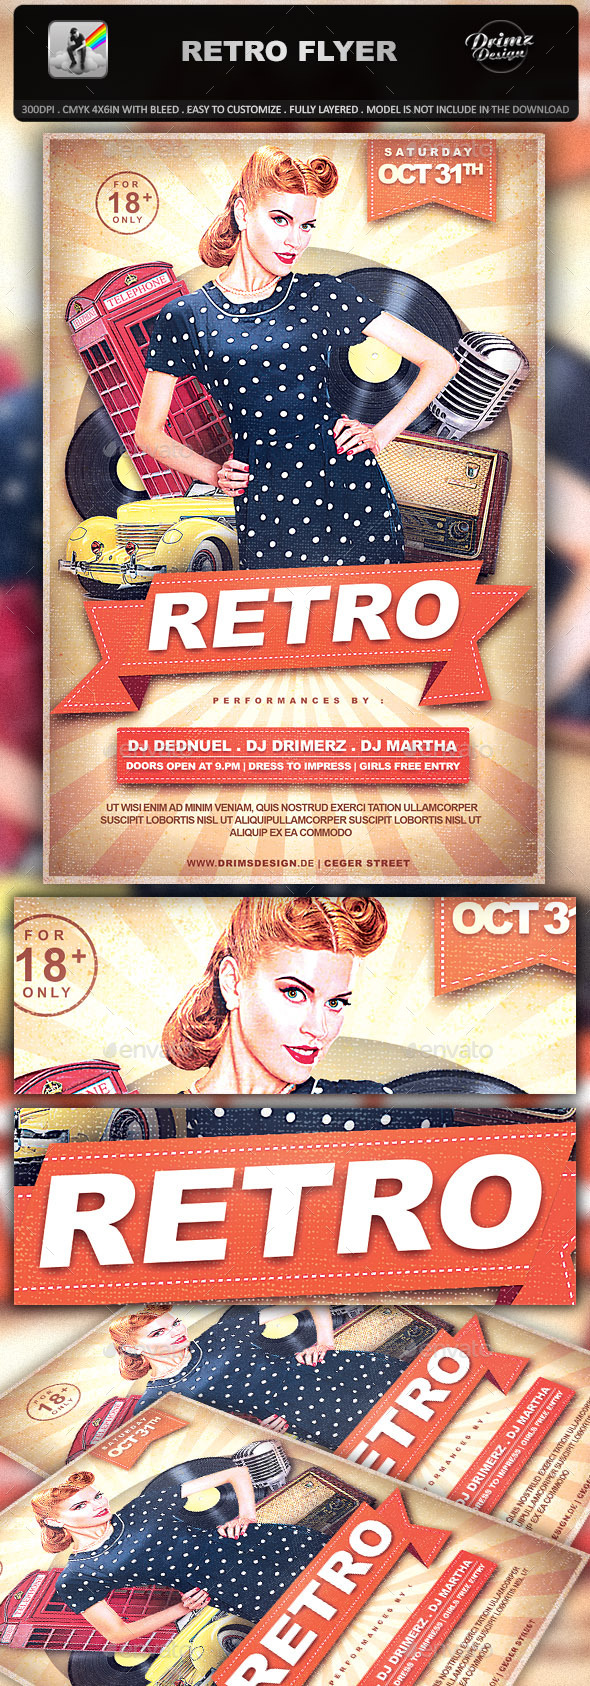 GraphicRiver Retro Flyer 9337557